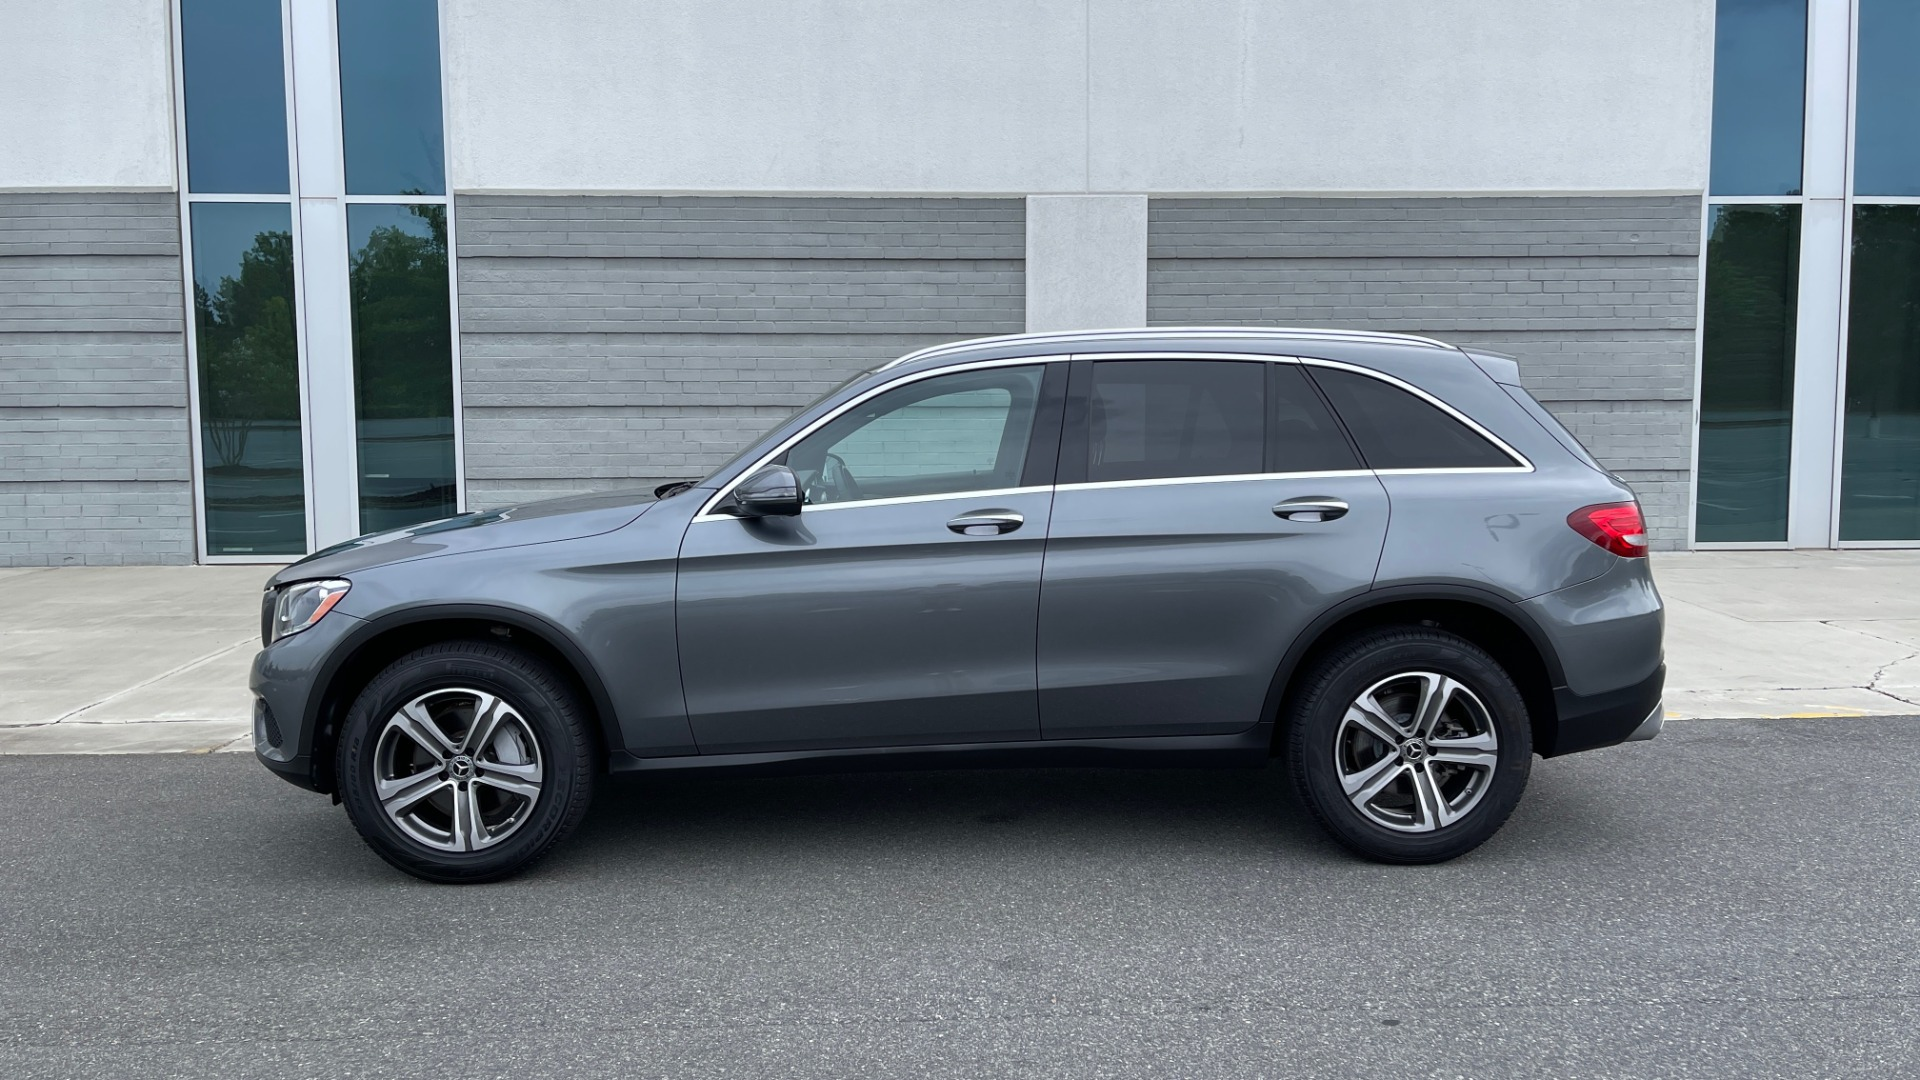 Used 2018 Mercedes-Benz GLC 300 4MATIC PREMIUM / PANO-ROOF / HTD STS / APPLE / REARVIEW for sale $34,295 at Formula Imports in Charlotte NC 28227 4